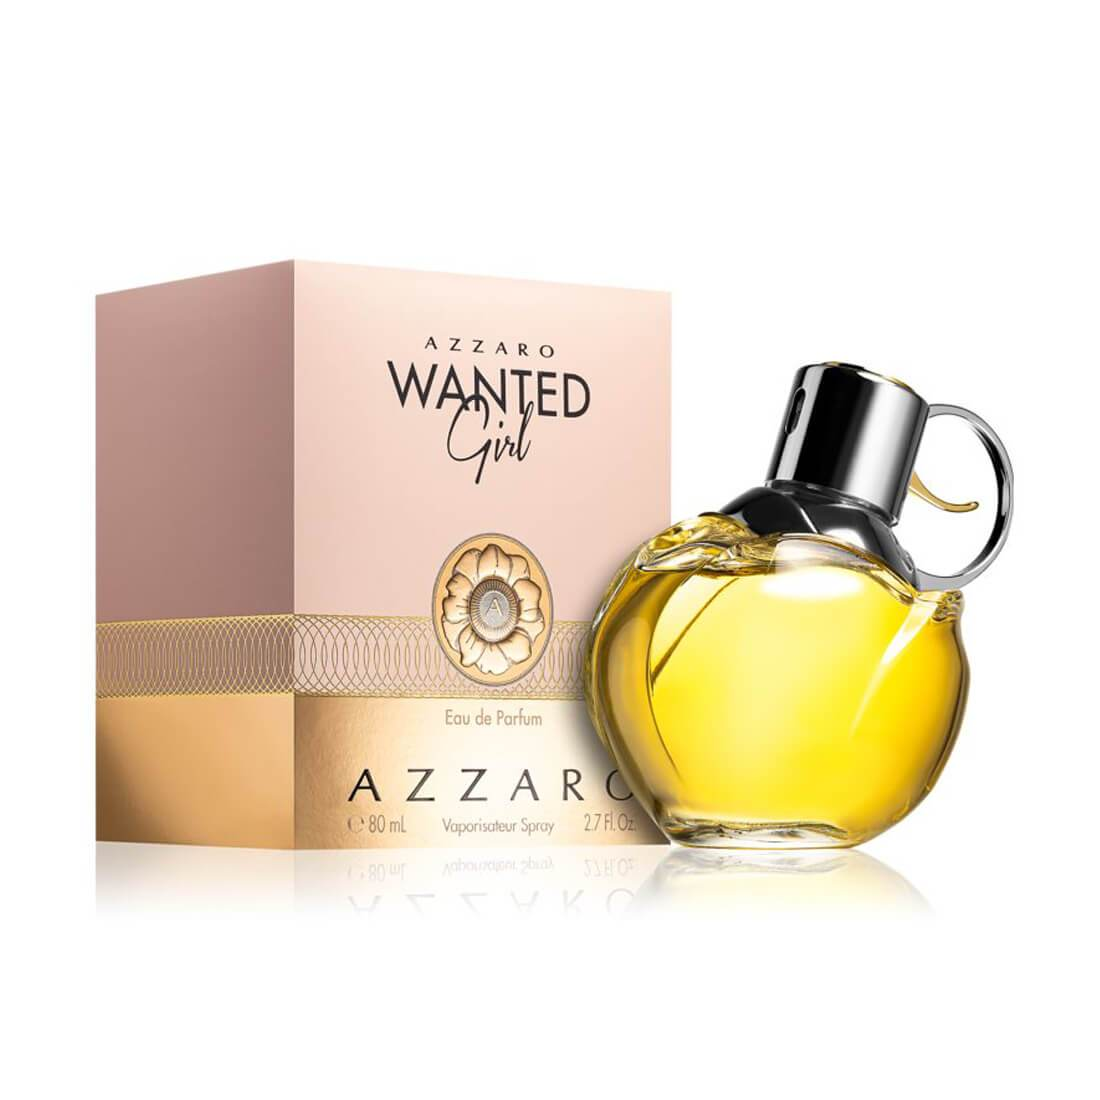 Azzaro Wanted Girl Eau De Perfume For Women - 80ml